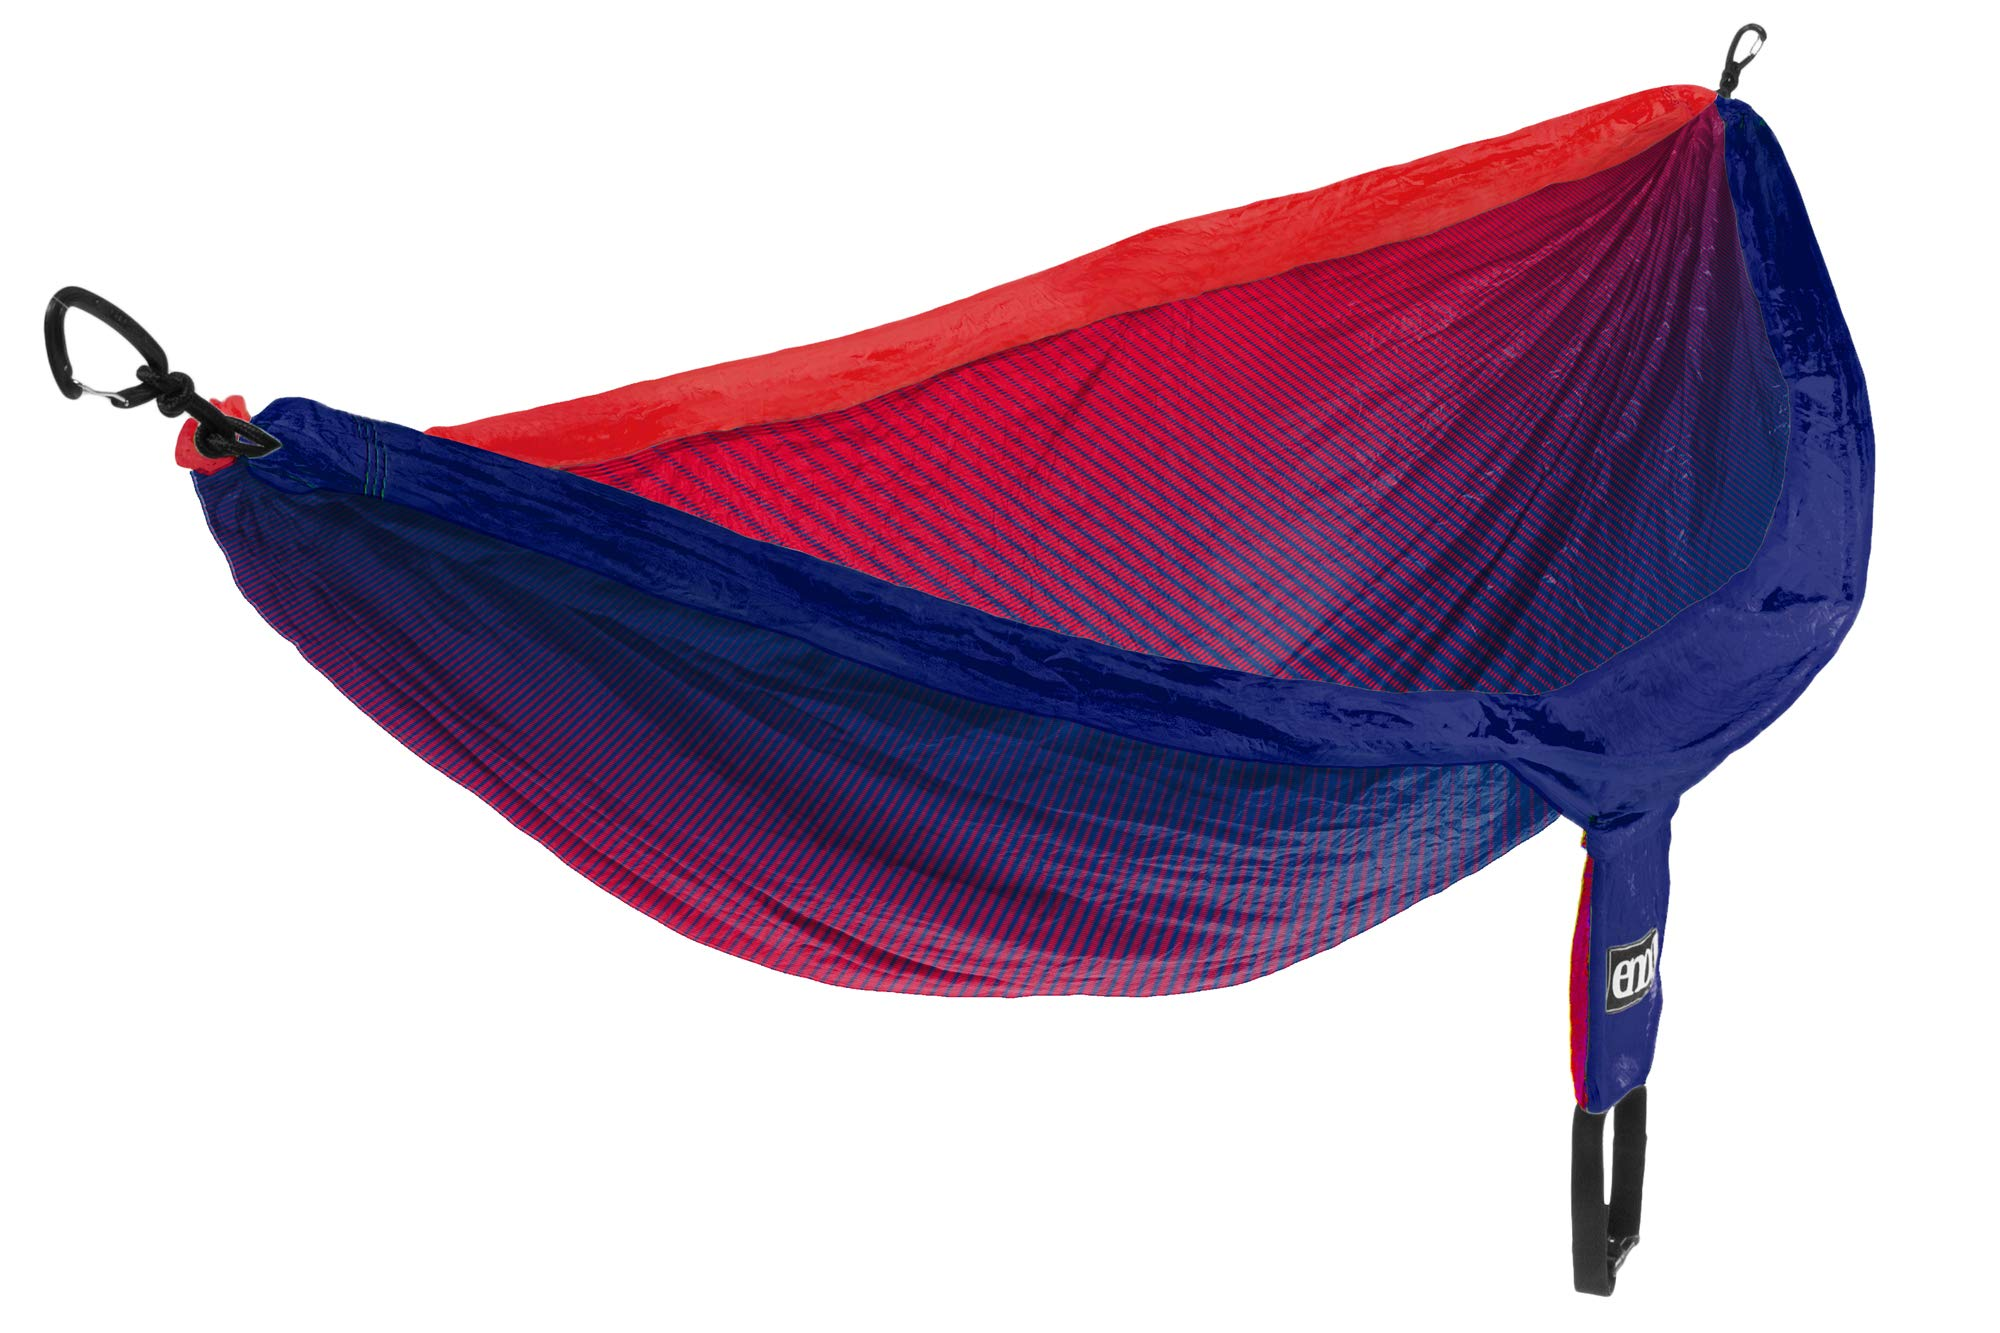 ENO - Eagles Nest Outfitters DoubleNest Print Portable Hammock for Two, Fade Red/Sapphire by ENO